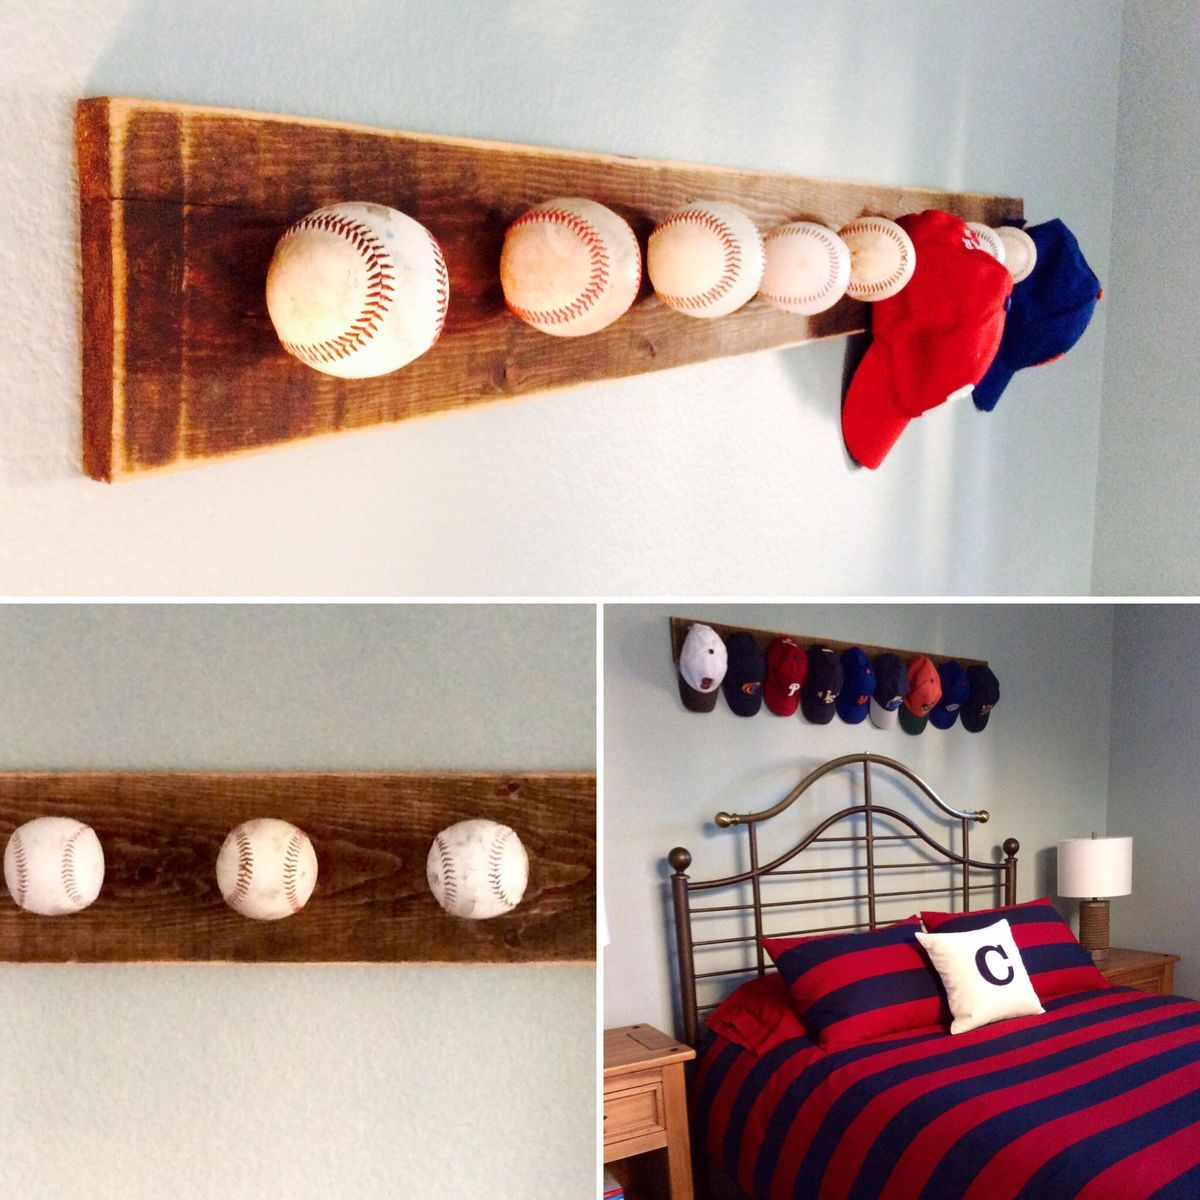 custom baseball hat rack by the created sign creative way